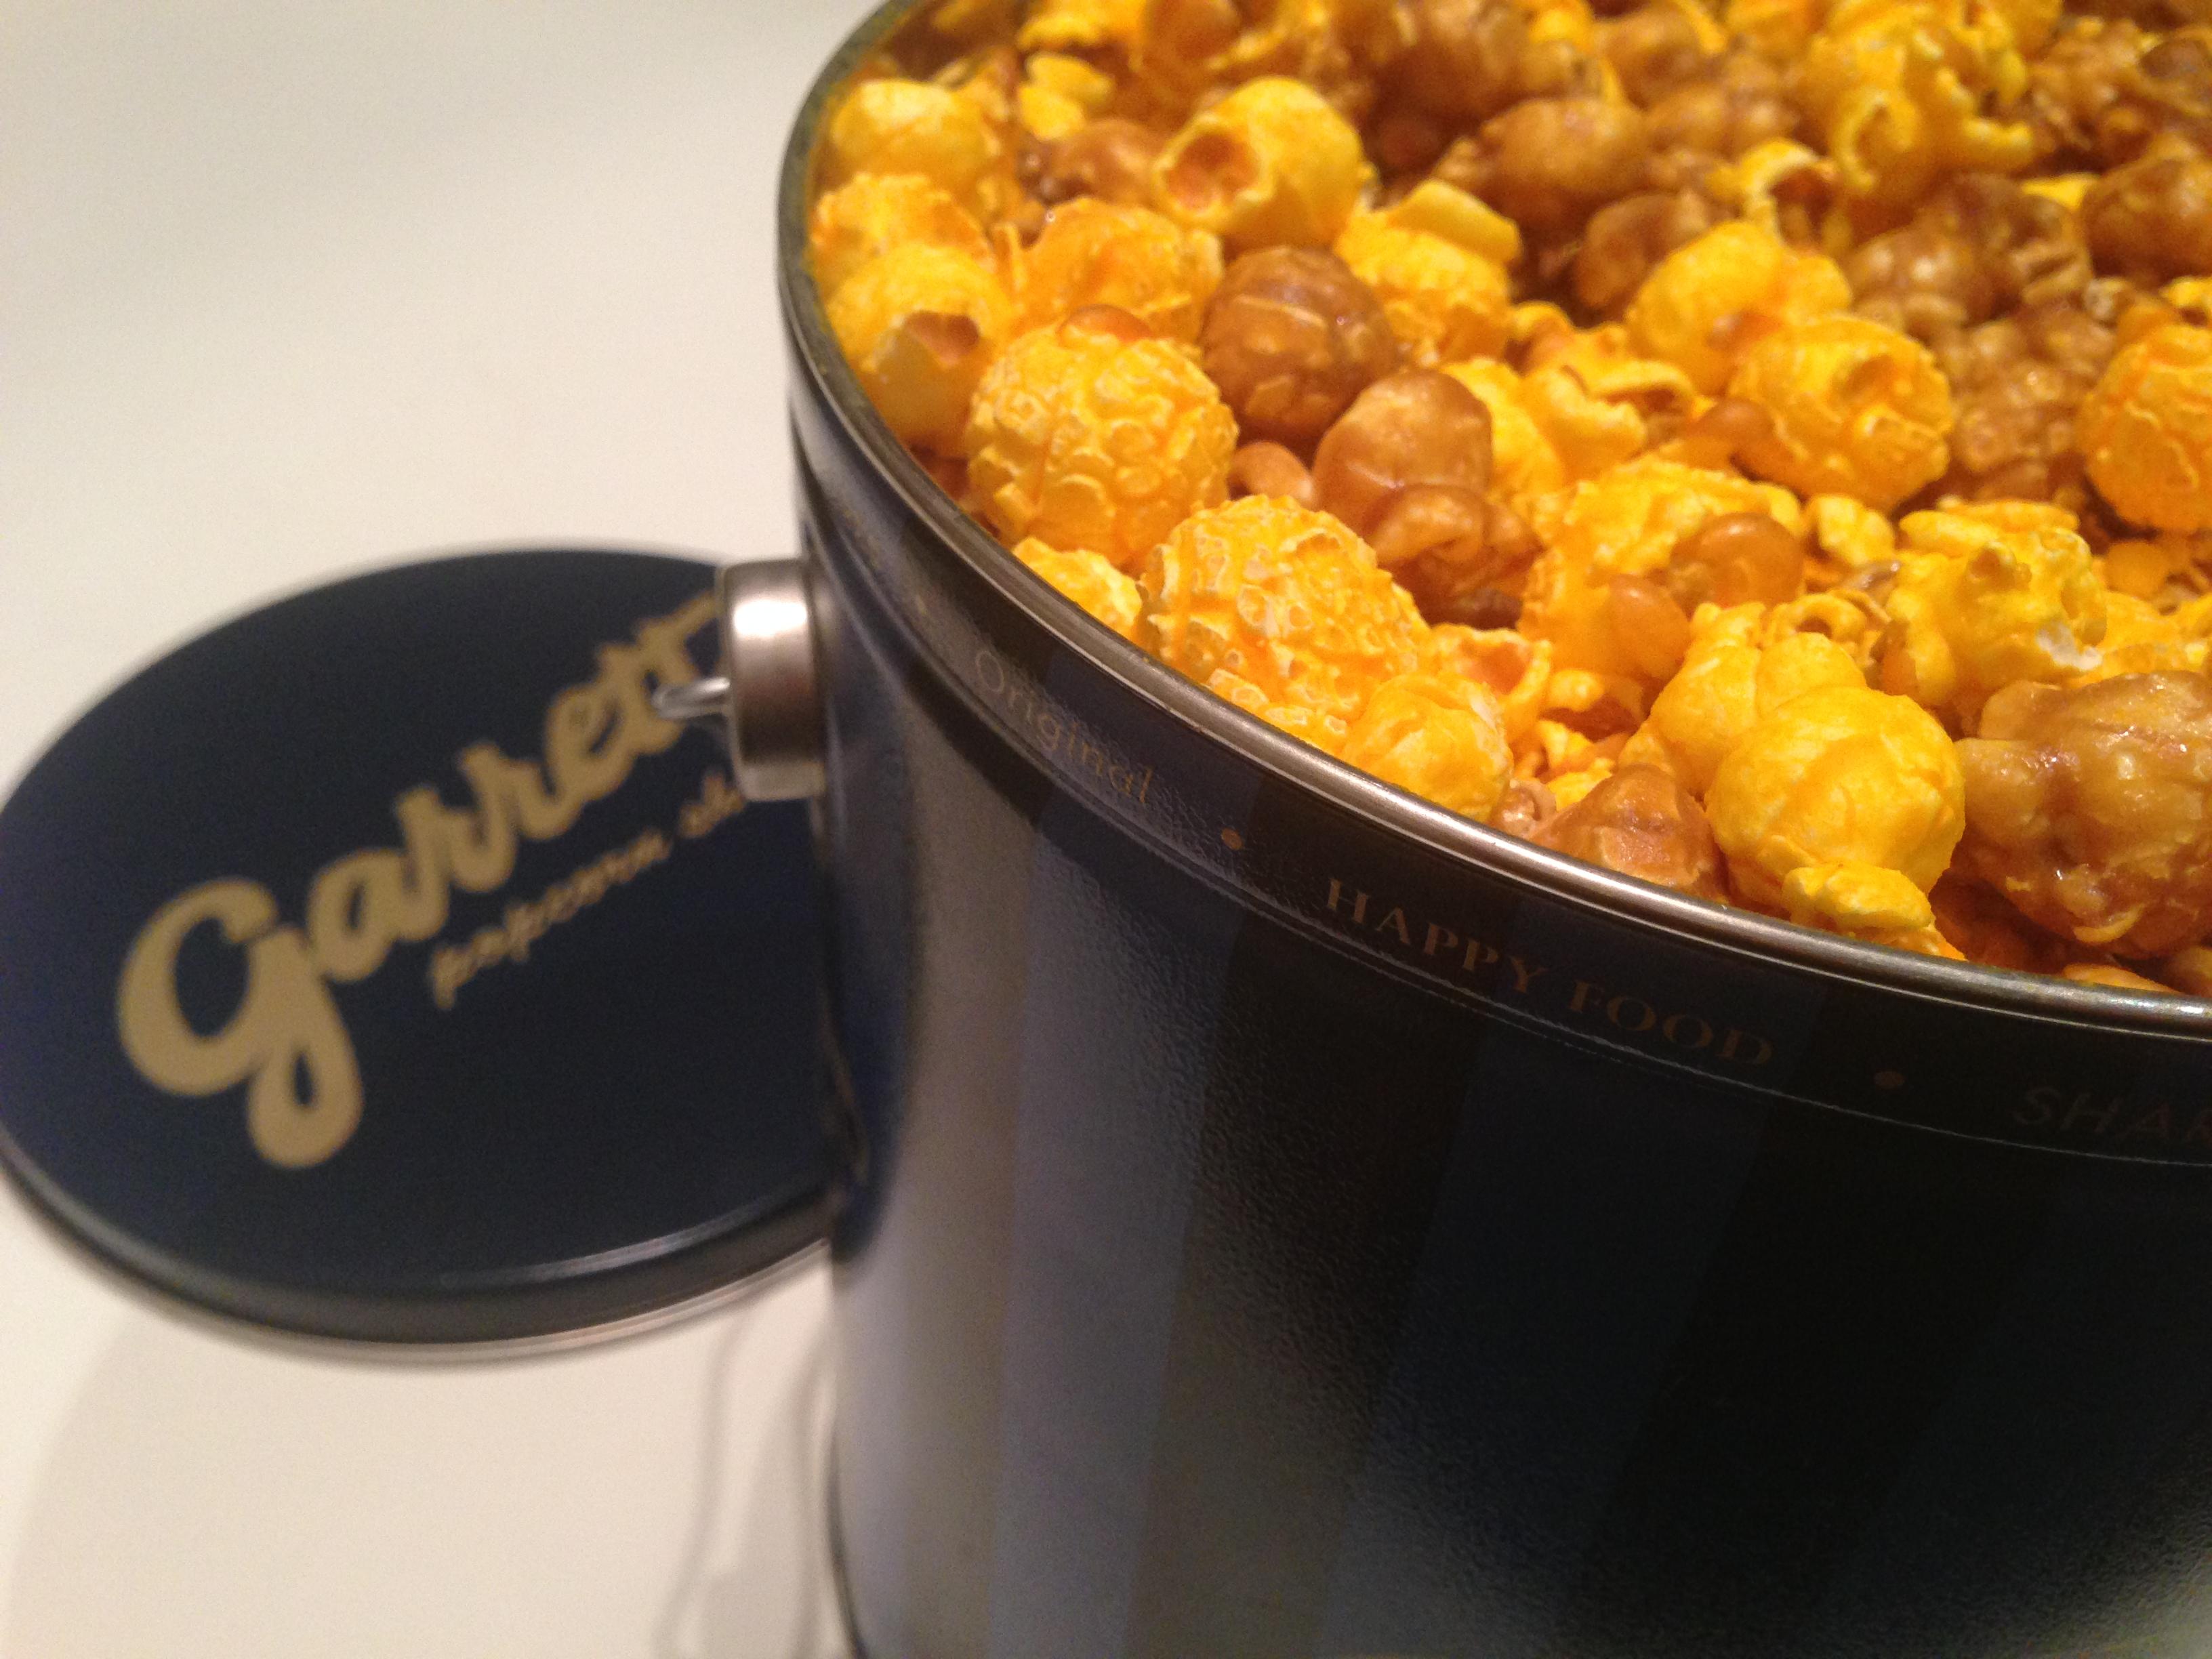 Garrett Popcorn – The Chicago Mix Review